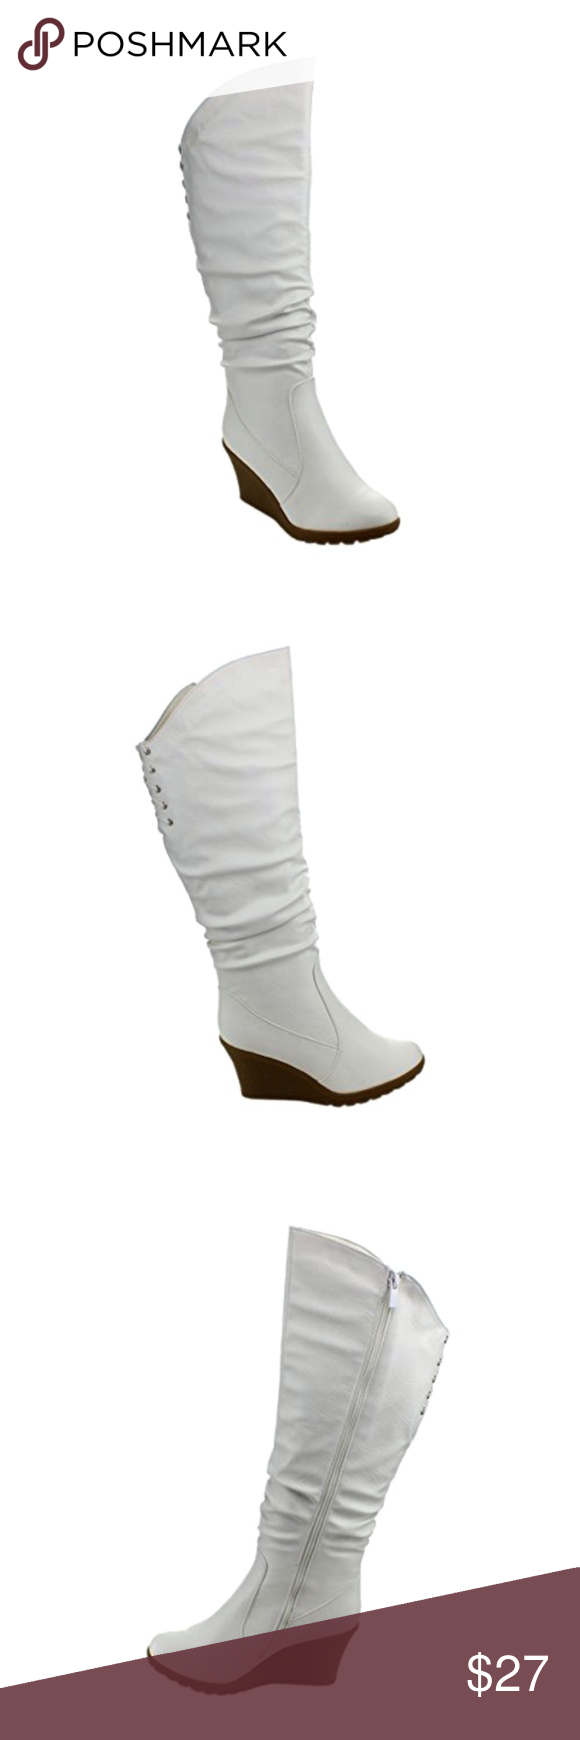 9797f6c9ef5e Top Moda Pure-40 Lace-Up Slouched Wedge Heel Boots Top Moda Pure-